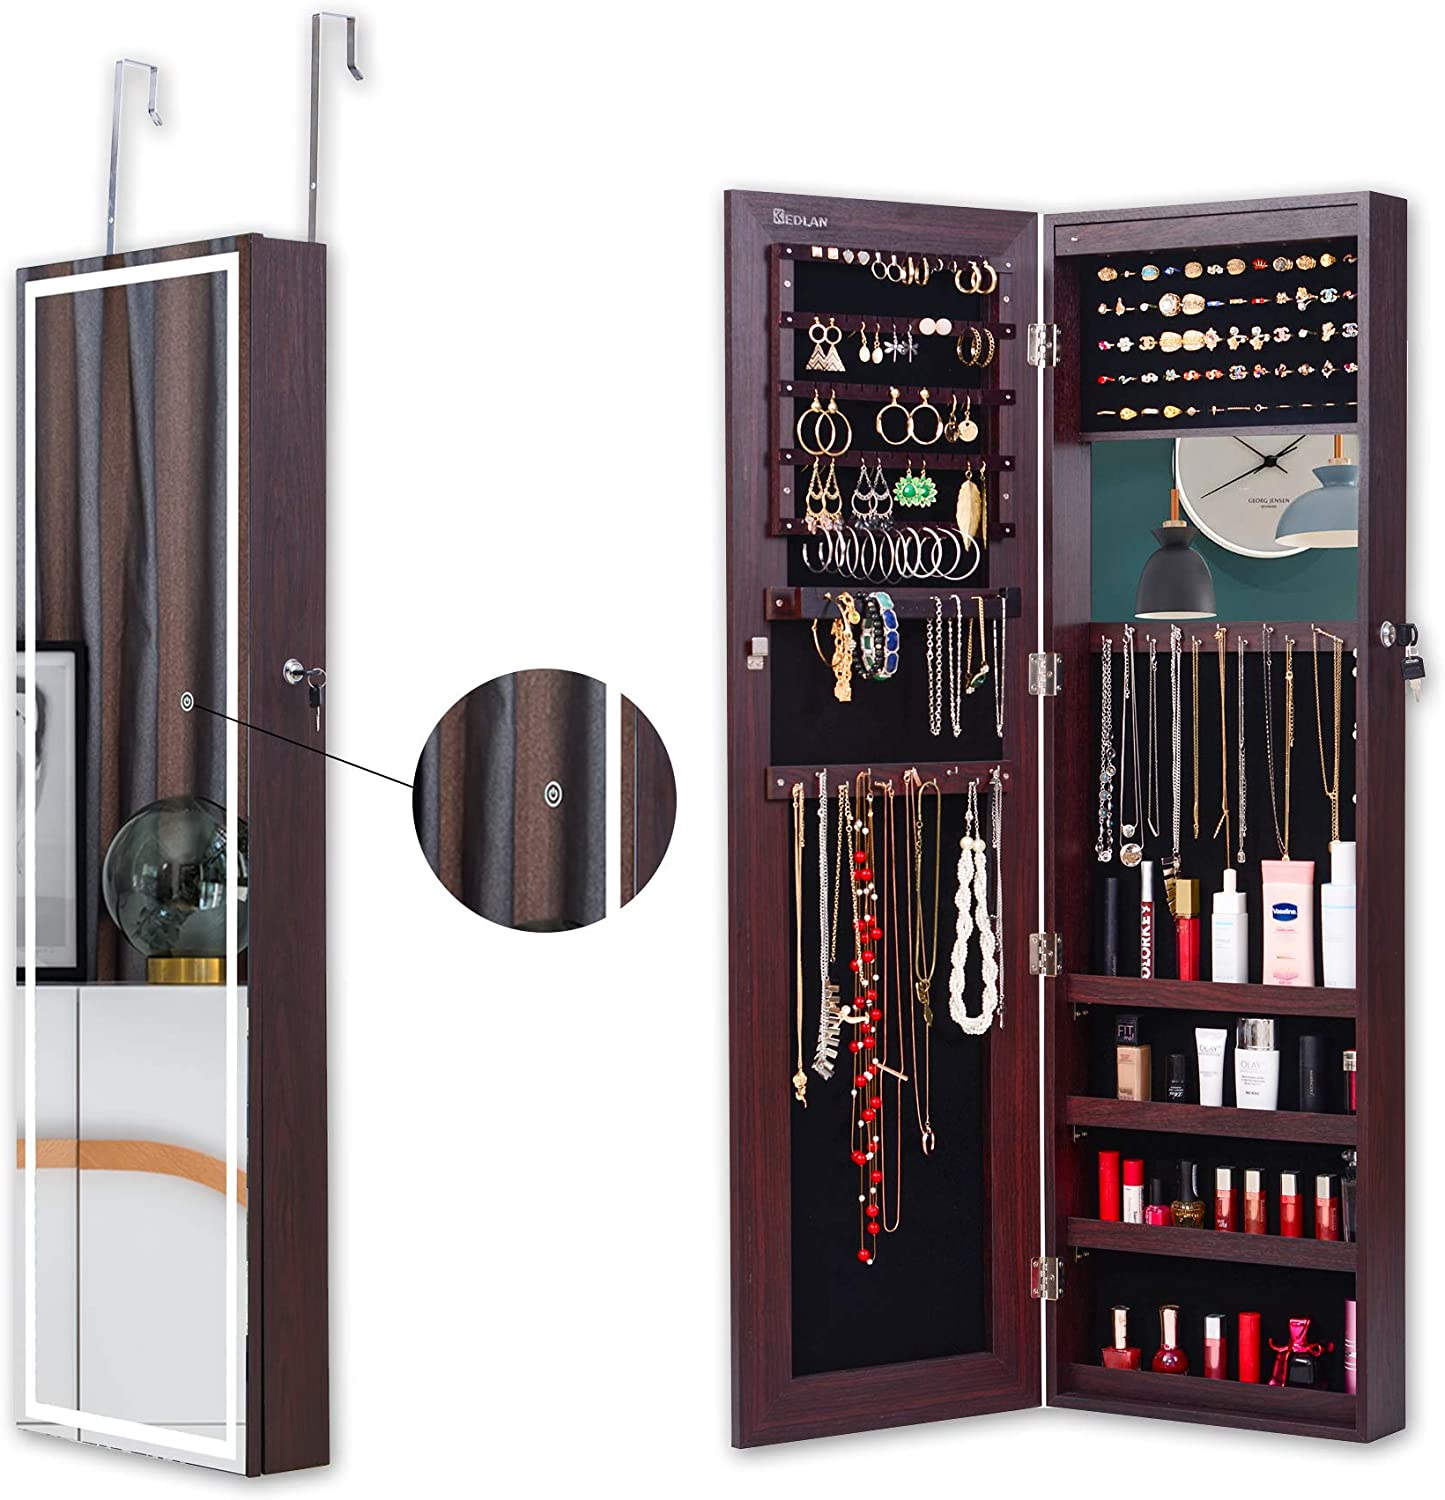 Makeup Wider View KEDLAN Jewelry Armoire Cabinet Touch Screen Light /& 6 LED Inside Dark Brown Full-Length Frameless Mirrored Storage on Wall or Door Large Capacity for Dressing